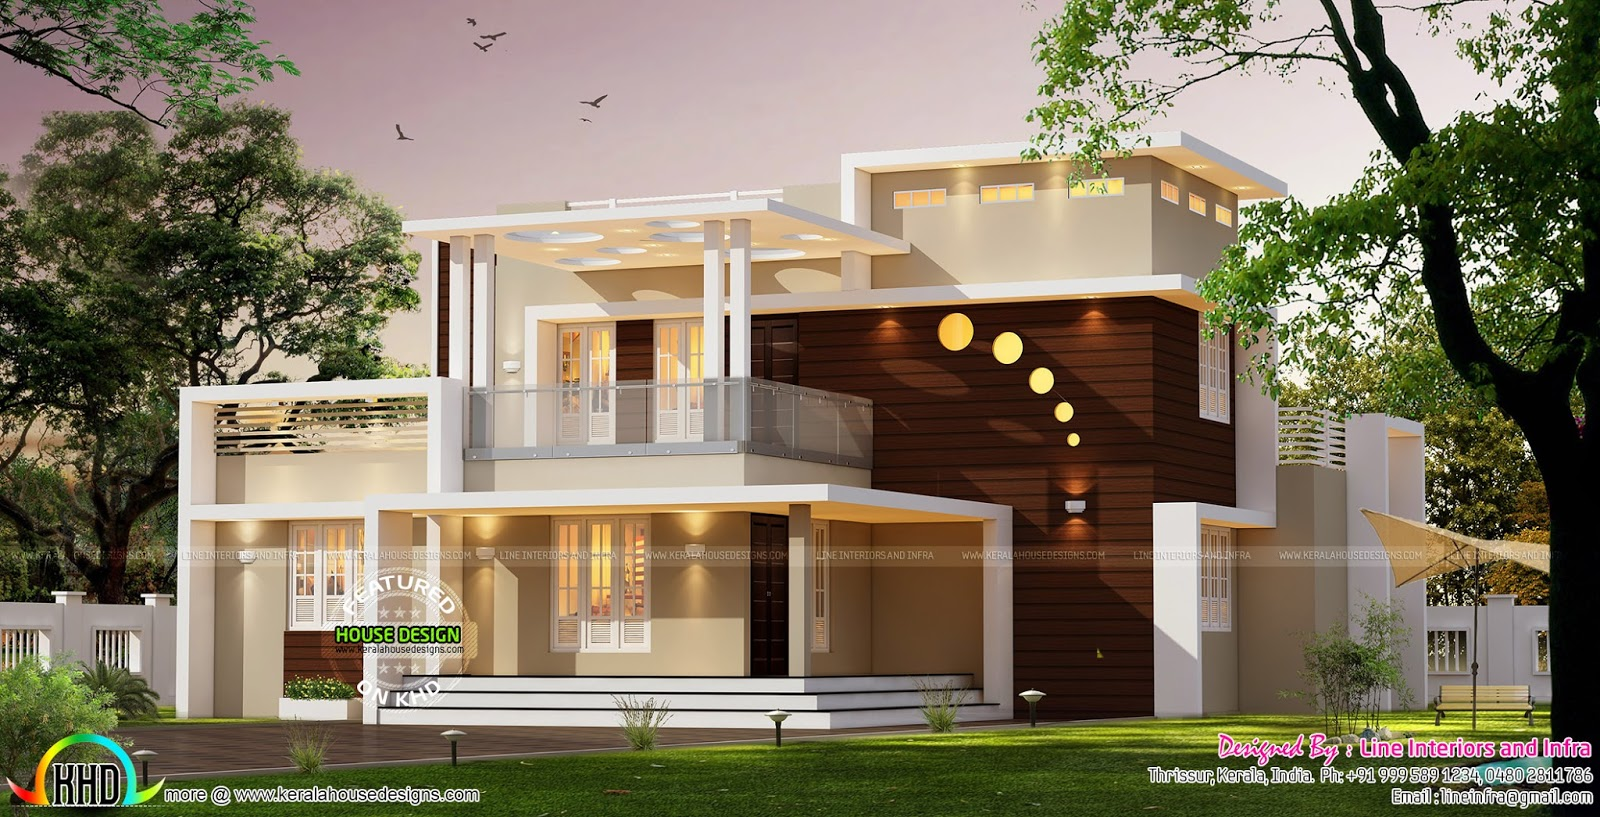 Contemporary style home architecture 3000 sq ft kerala for 3000 square foot home